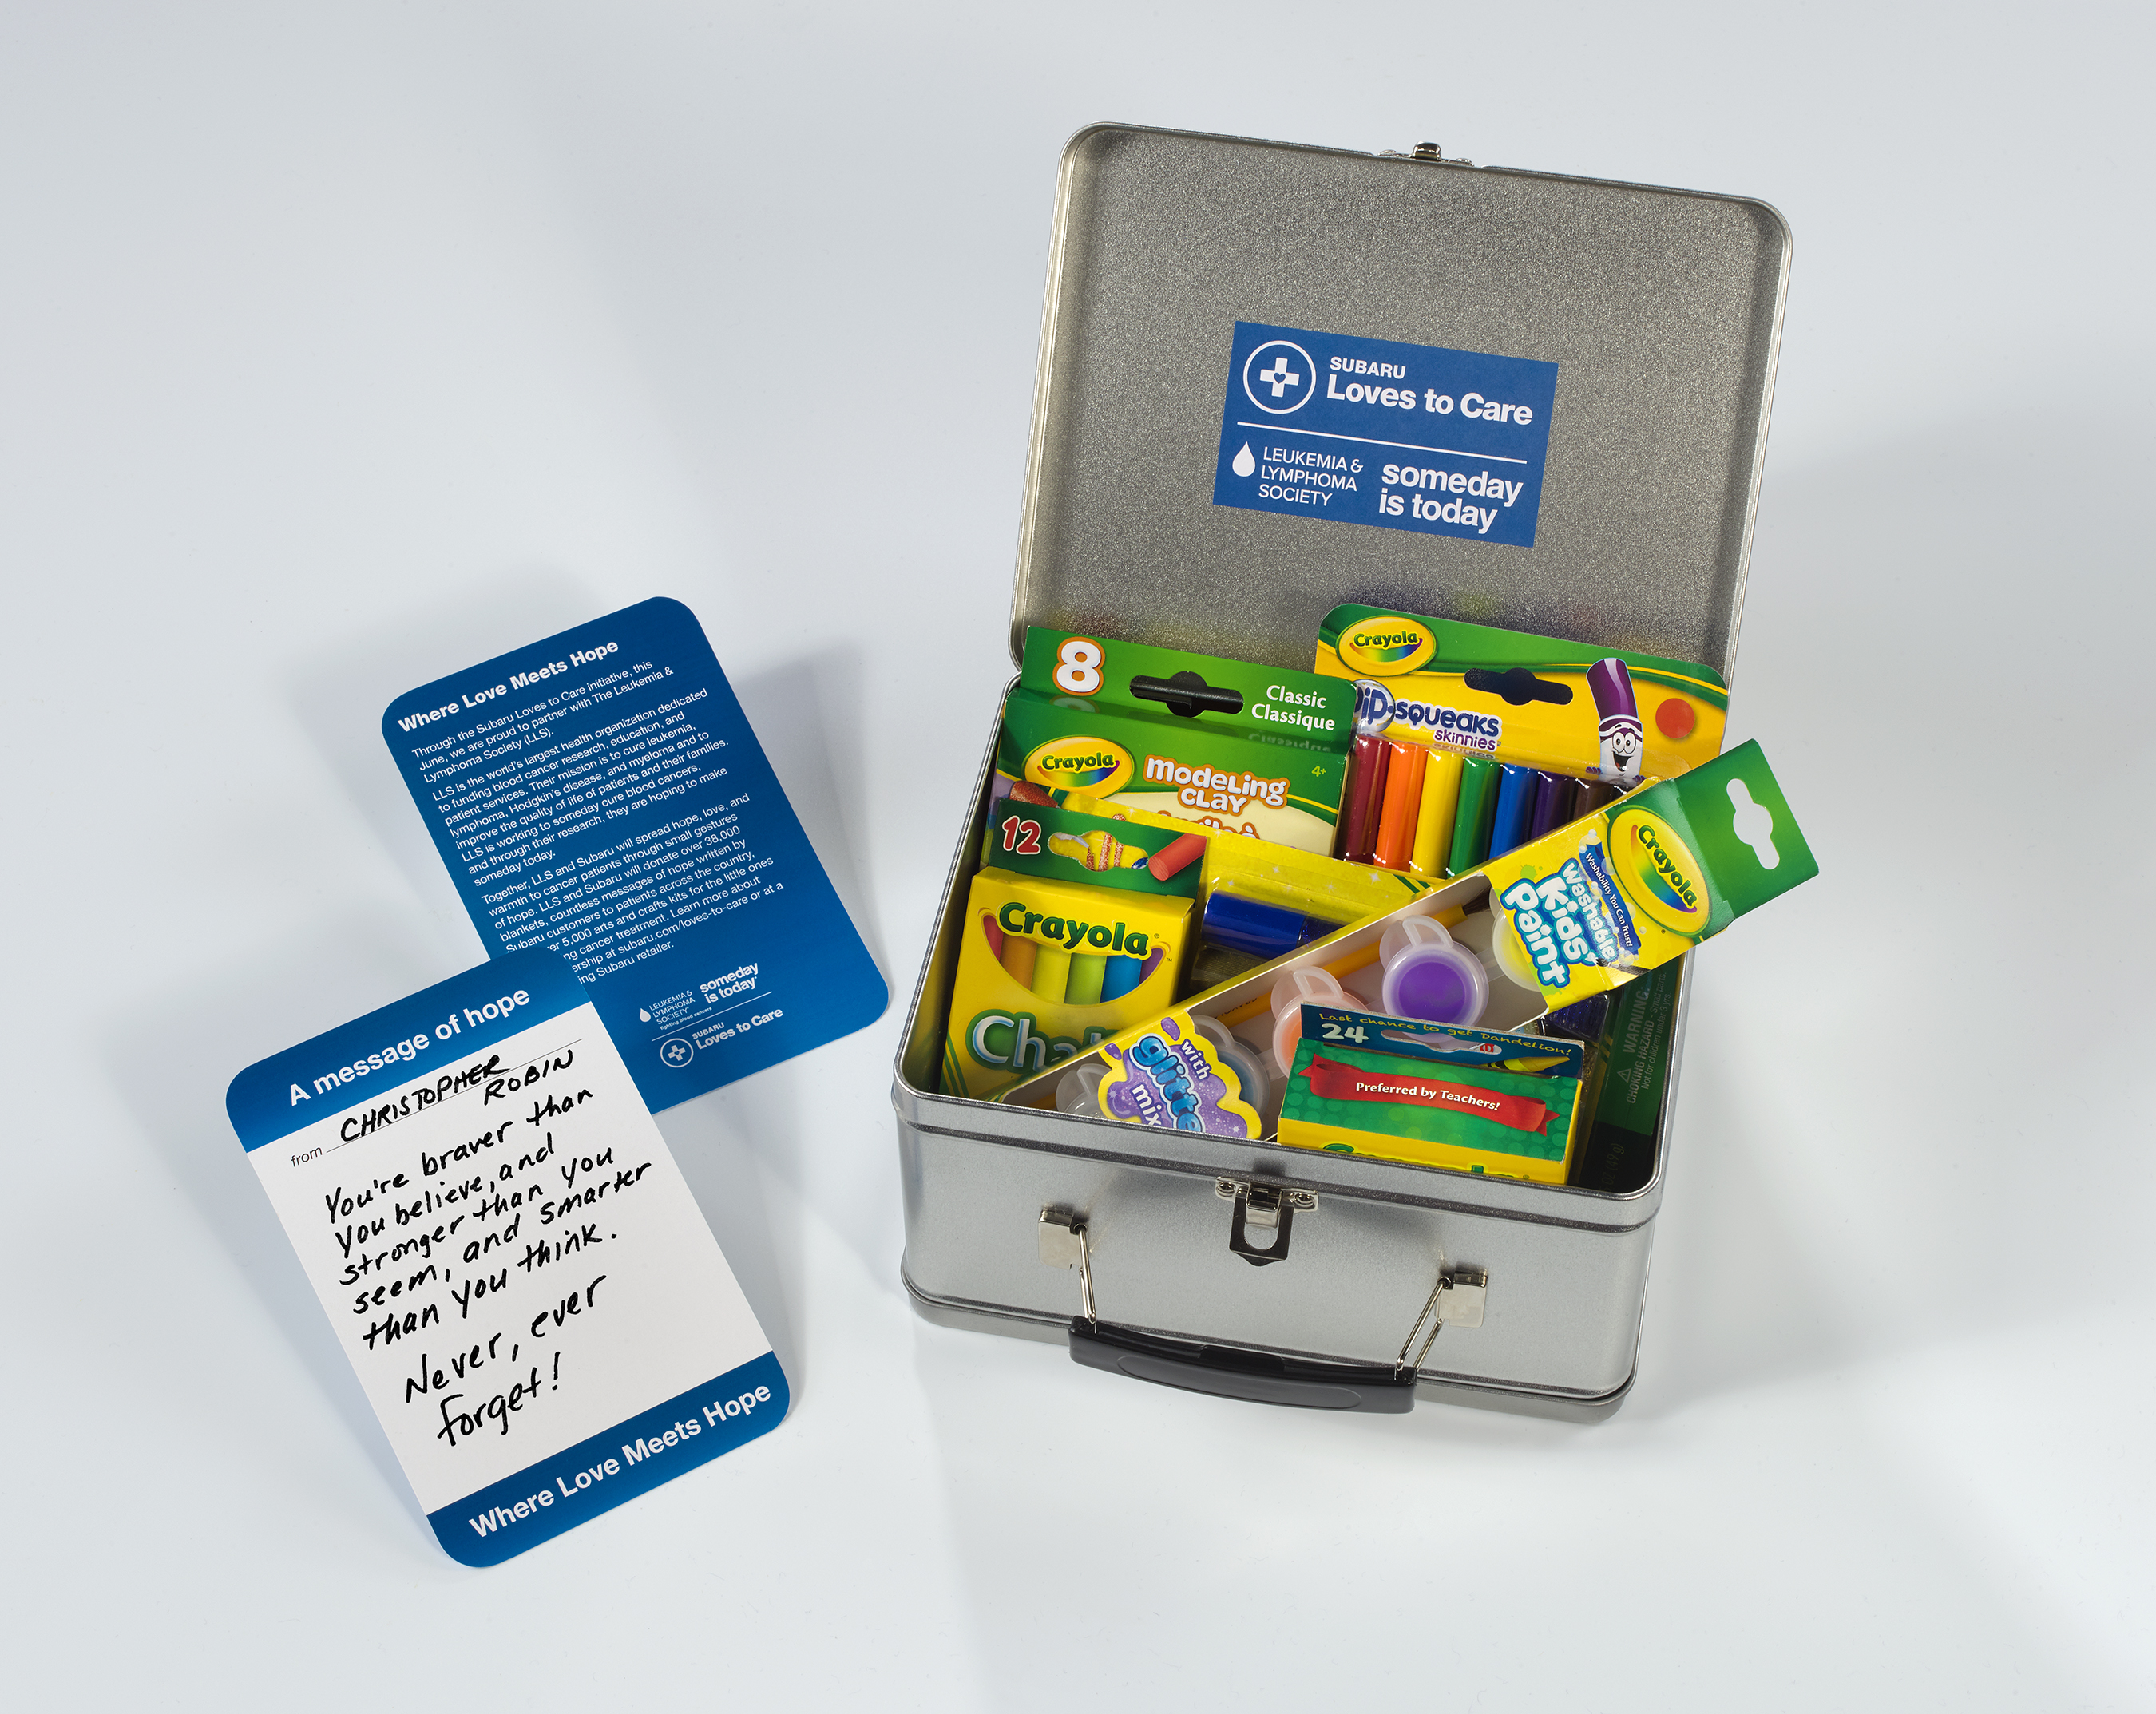 For Subaru Loves to Care month, Subaru and LLS will deliver personalized messages of hope alongside arts and crafts kits to children battling cancer in local communities.